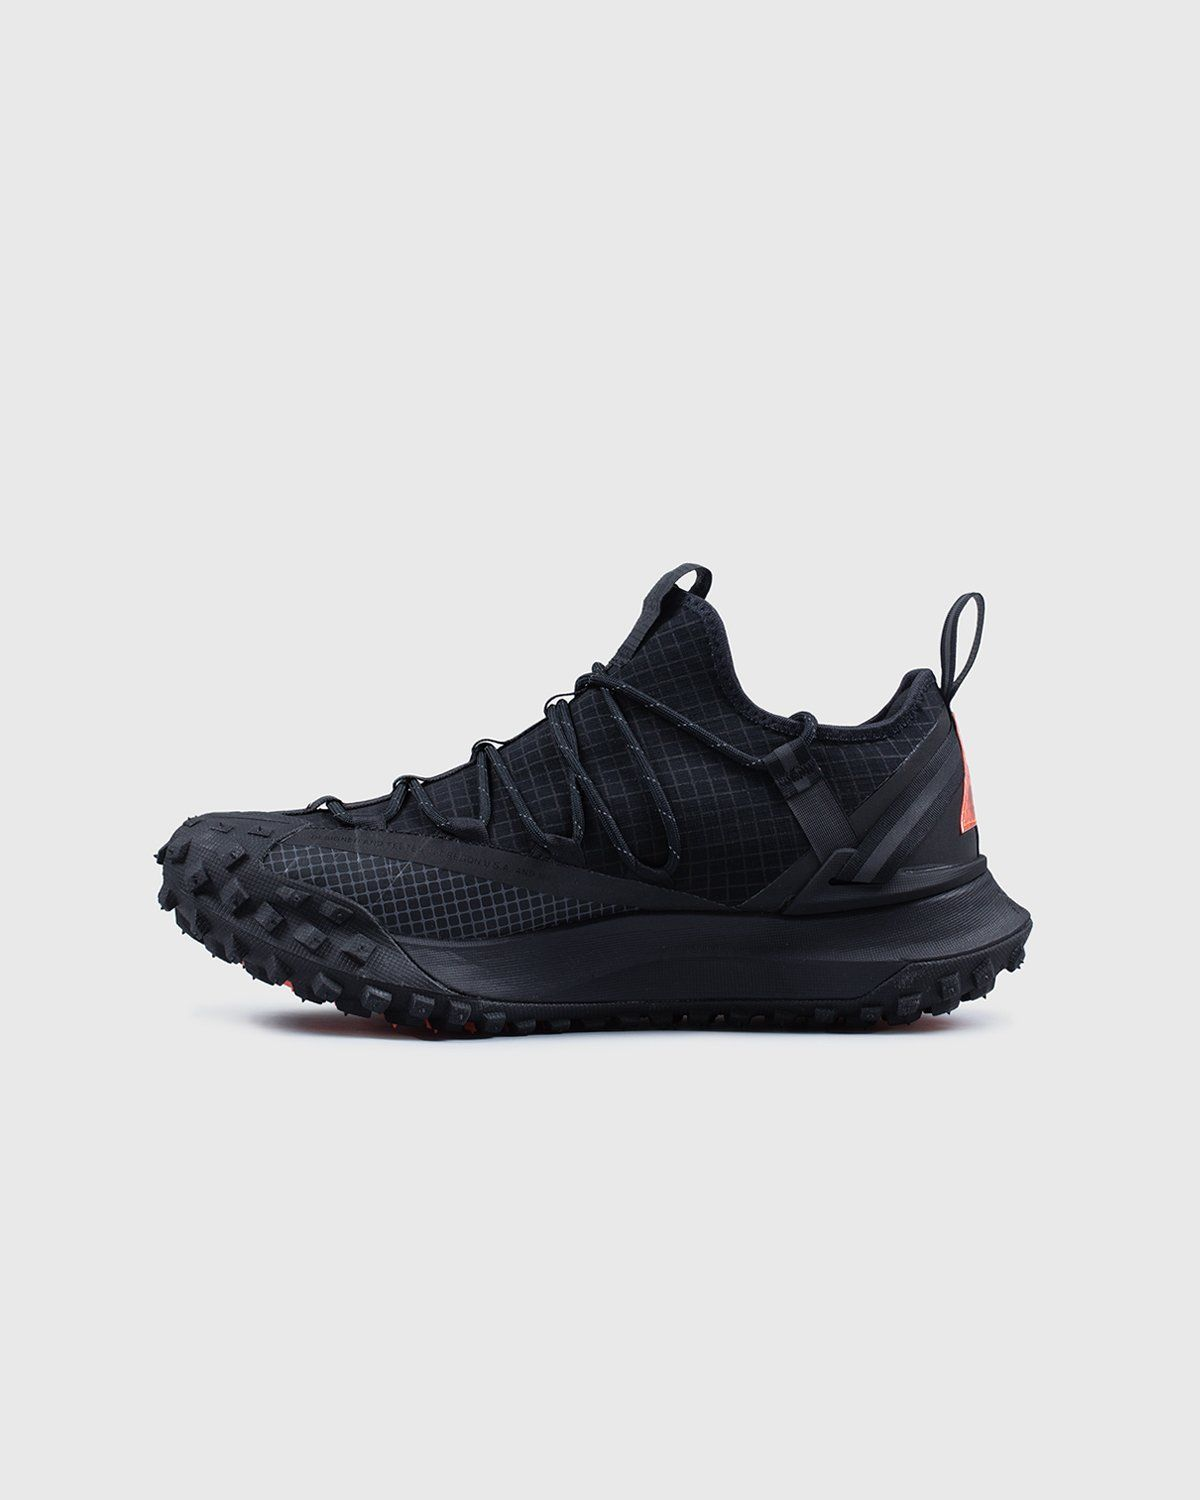 NIKE ACG - ACG MOUNTAIN FLY LOW ANTHRACITE - Image 4